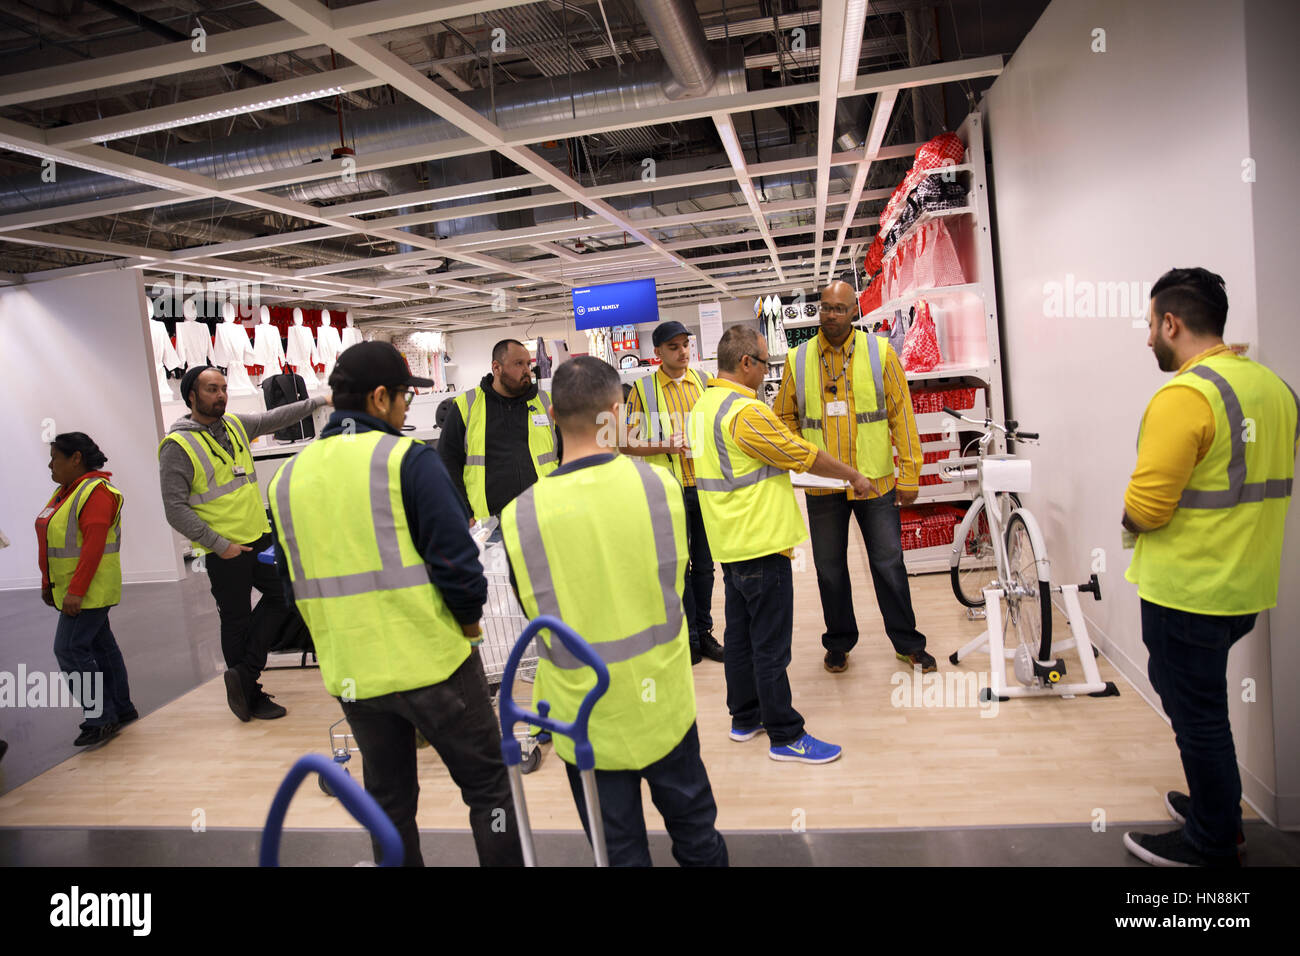 Burbank, CA, USA. 1st Feb, 2017. Asa Heath, Deputy Store Manager Speaks To  Employees About The SLADDA Bicycle During A Preview Of The New IKEA Burbank  Home ...